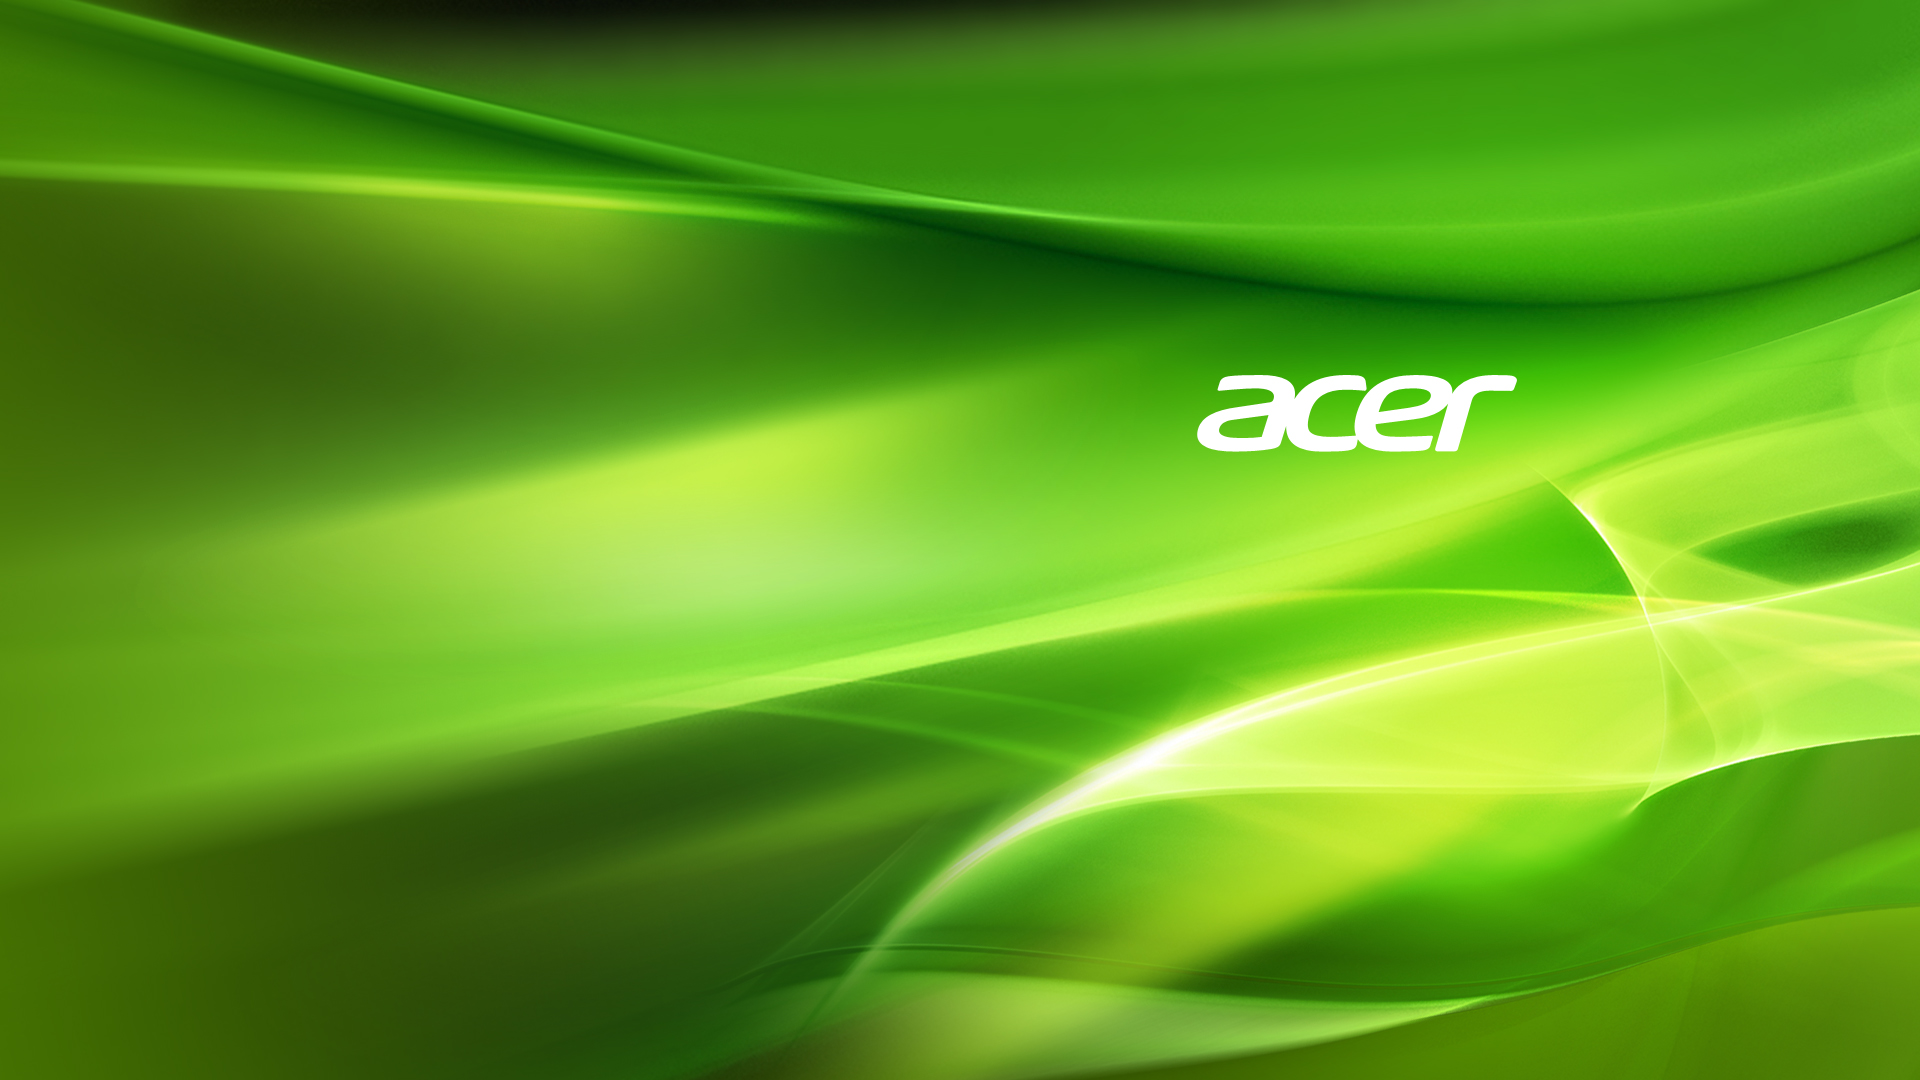 Acer Wallpaper Hd Wallpaper Wiki